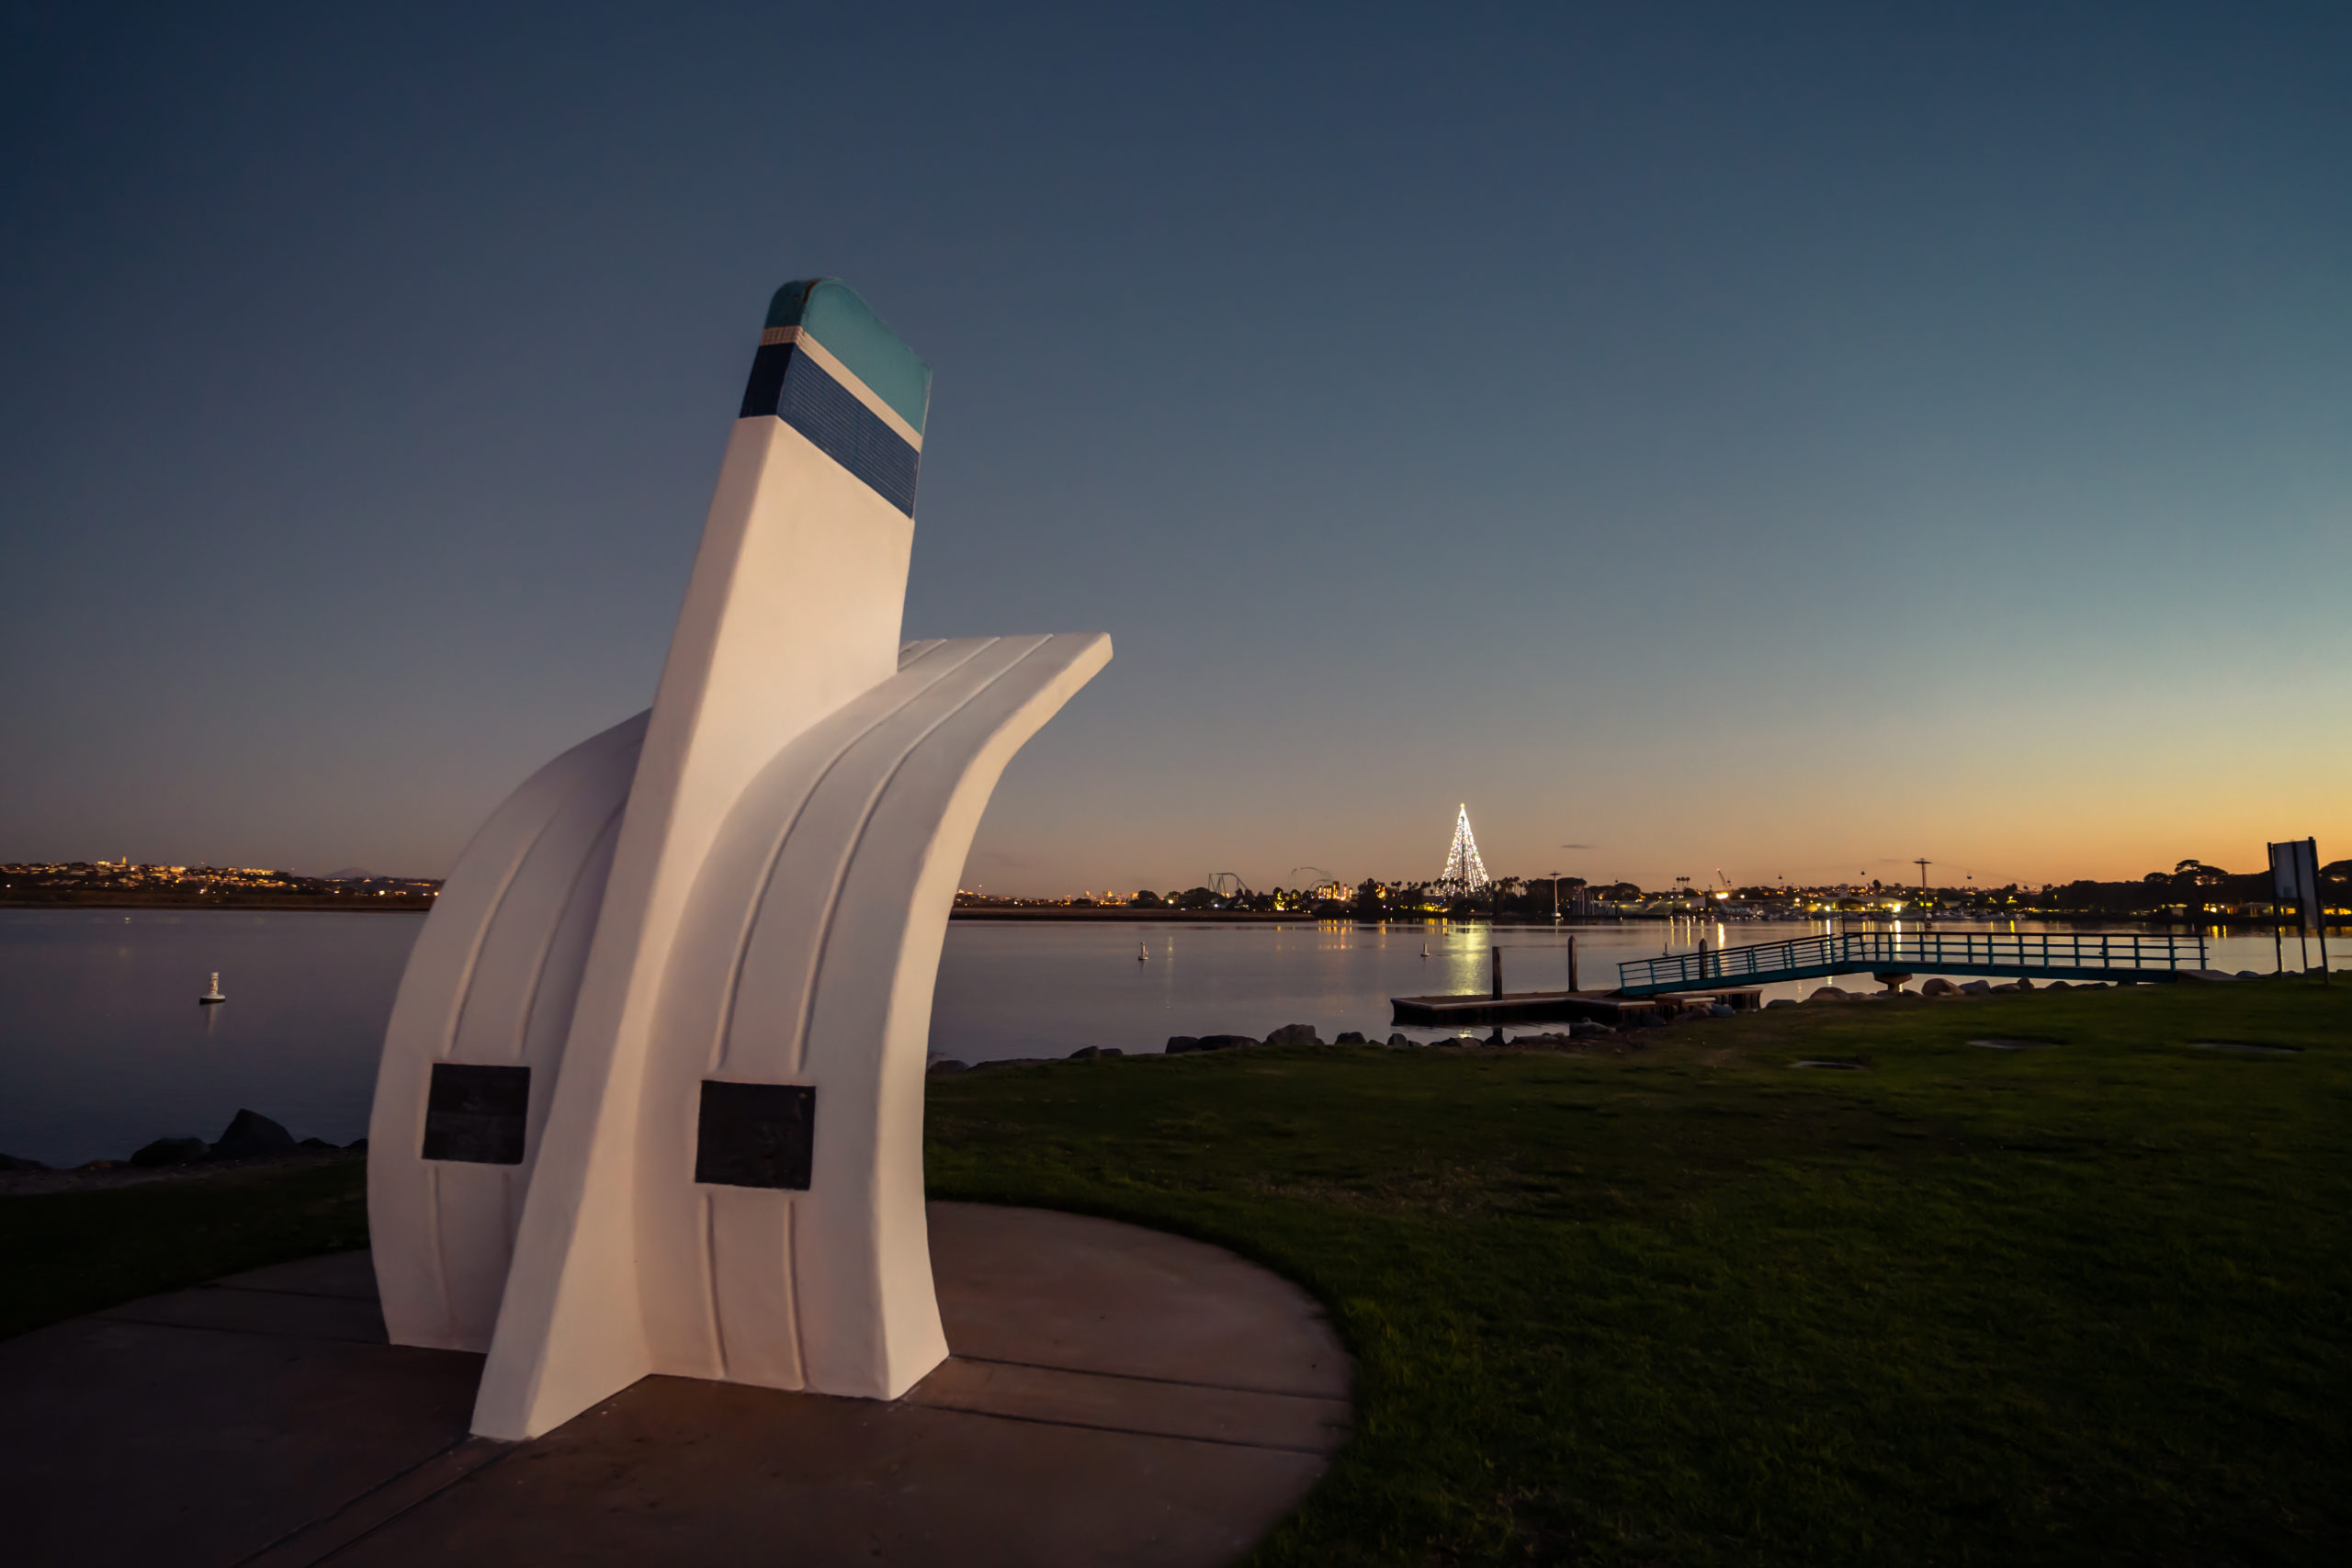 Bill Muncey Memorial and Mission Bay, San Diego